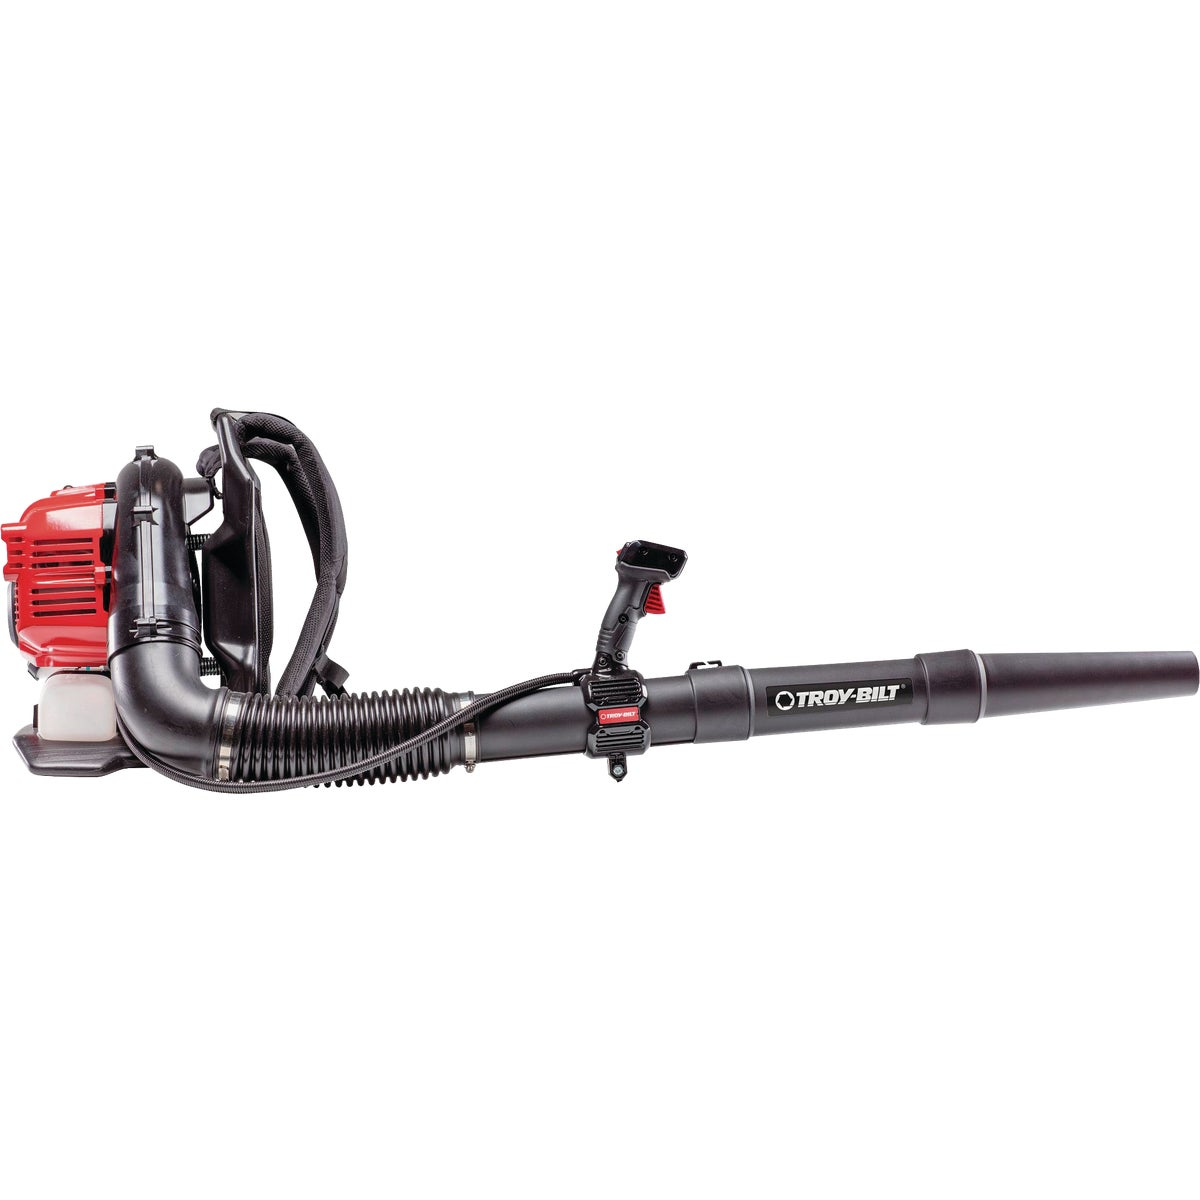 27CC GAS BACKPACK BLOWER